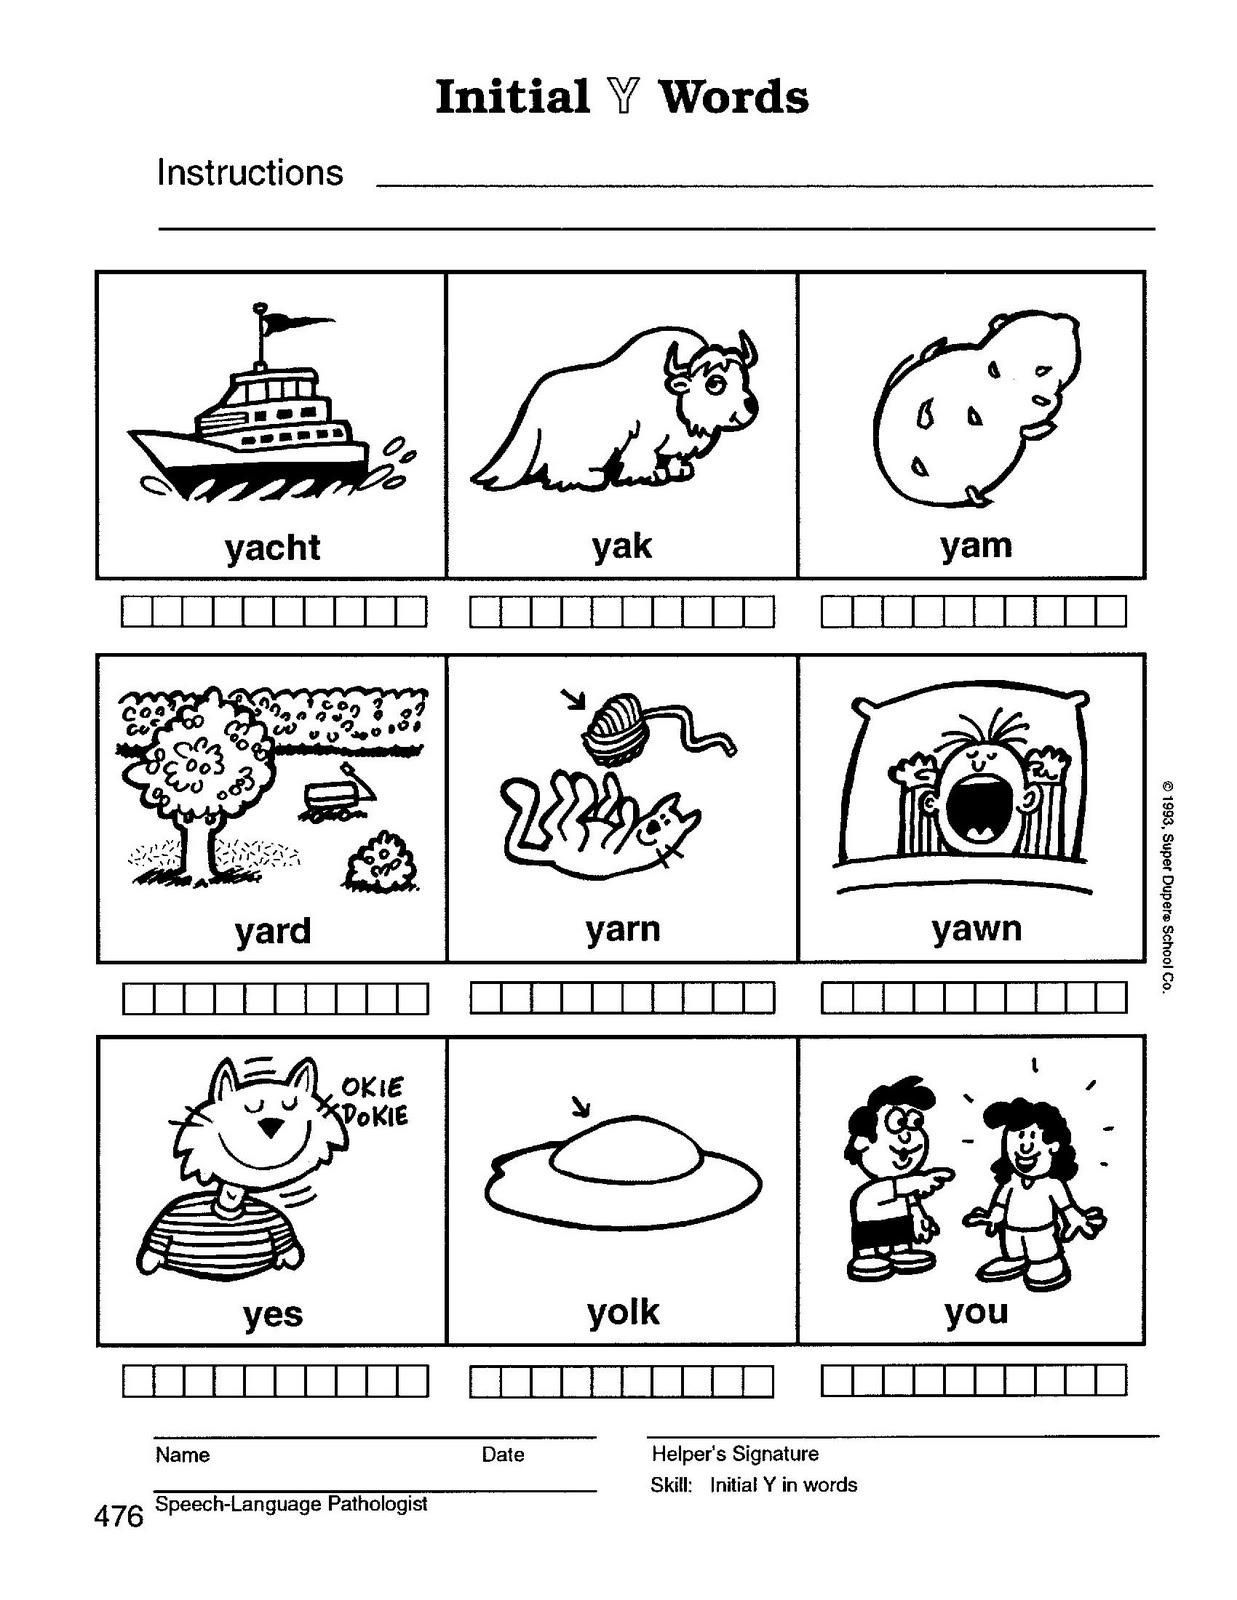 Y Pictures Words